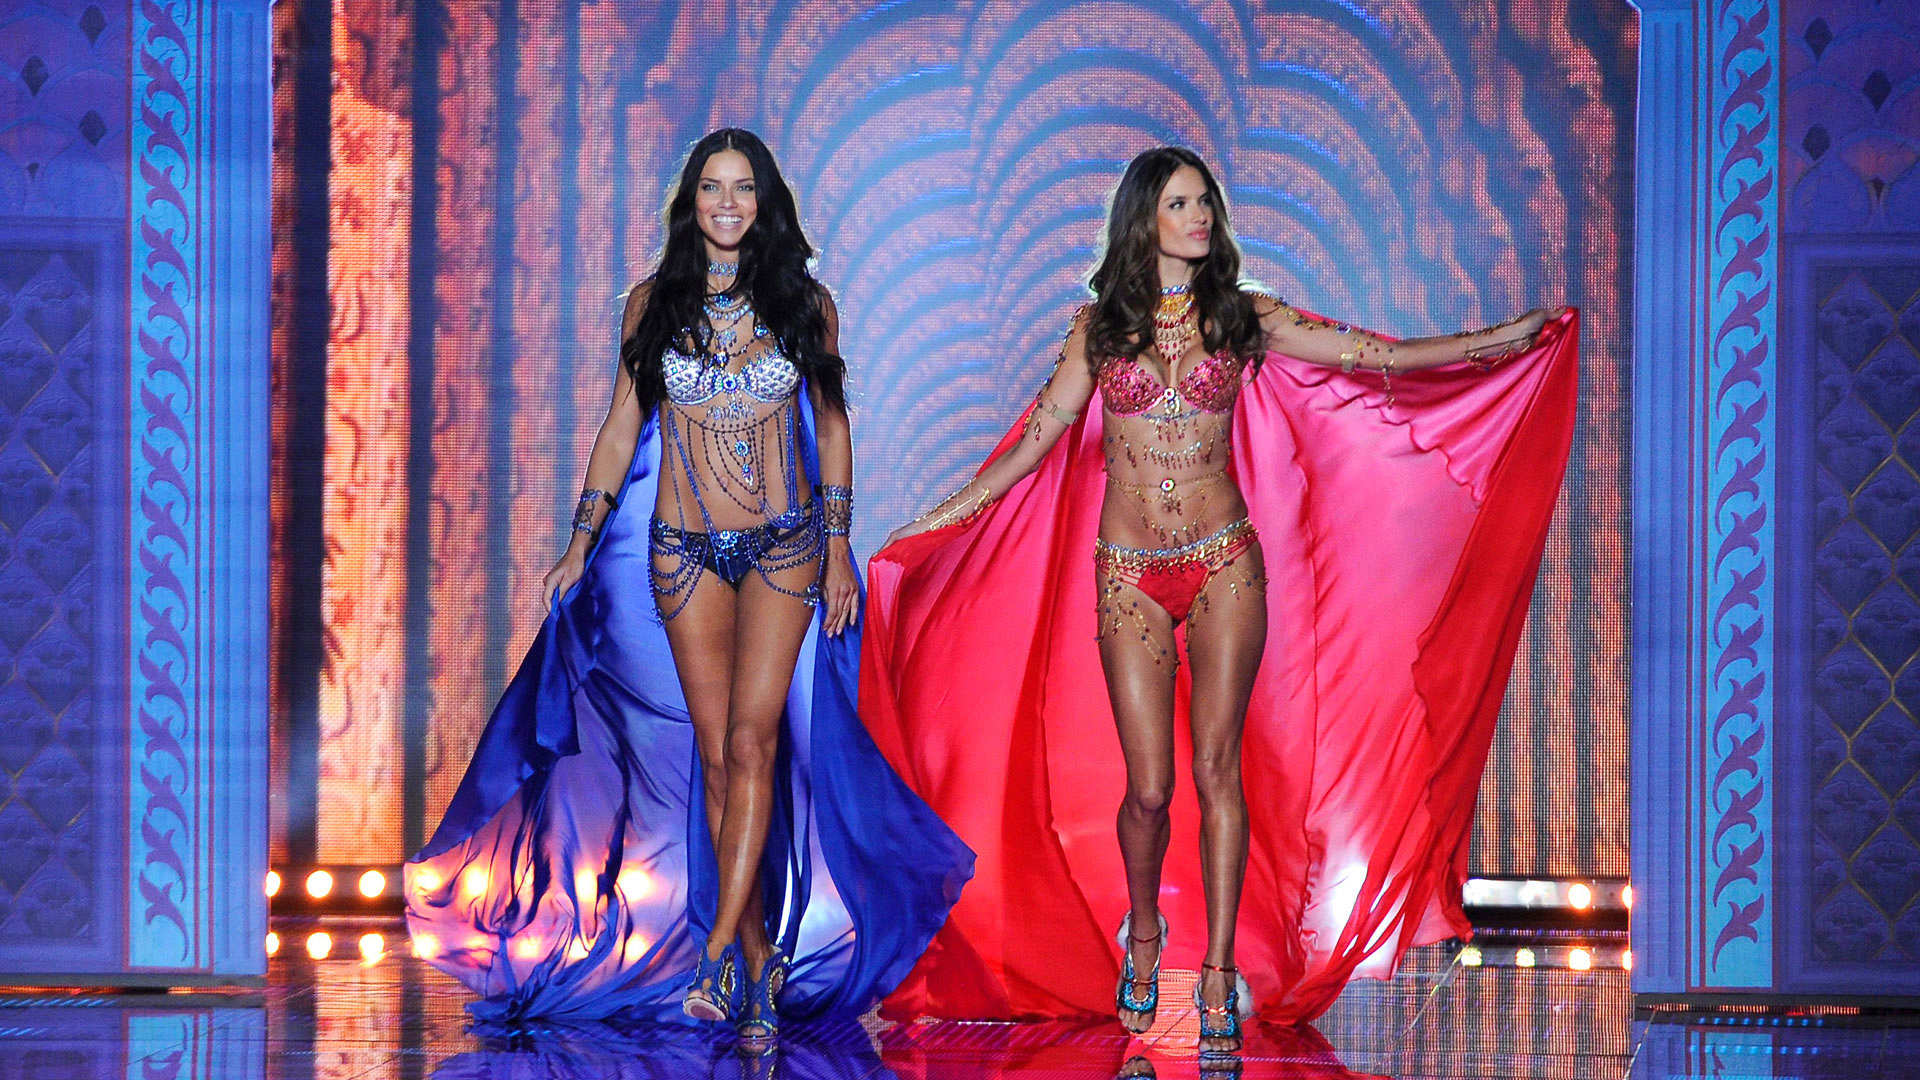 Alessandra Ambrosio and Adriana Lima were a match made in heaven in 2014.